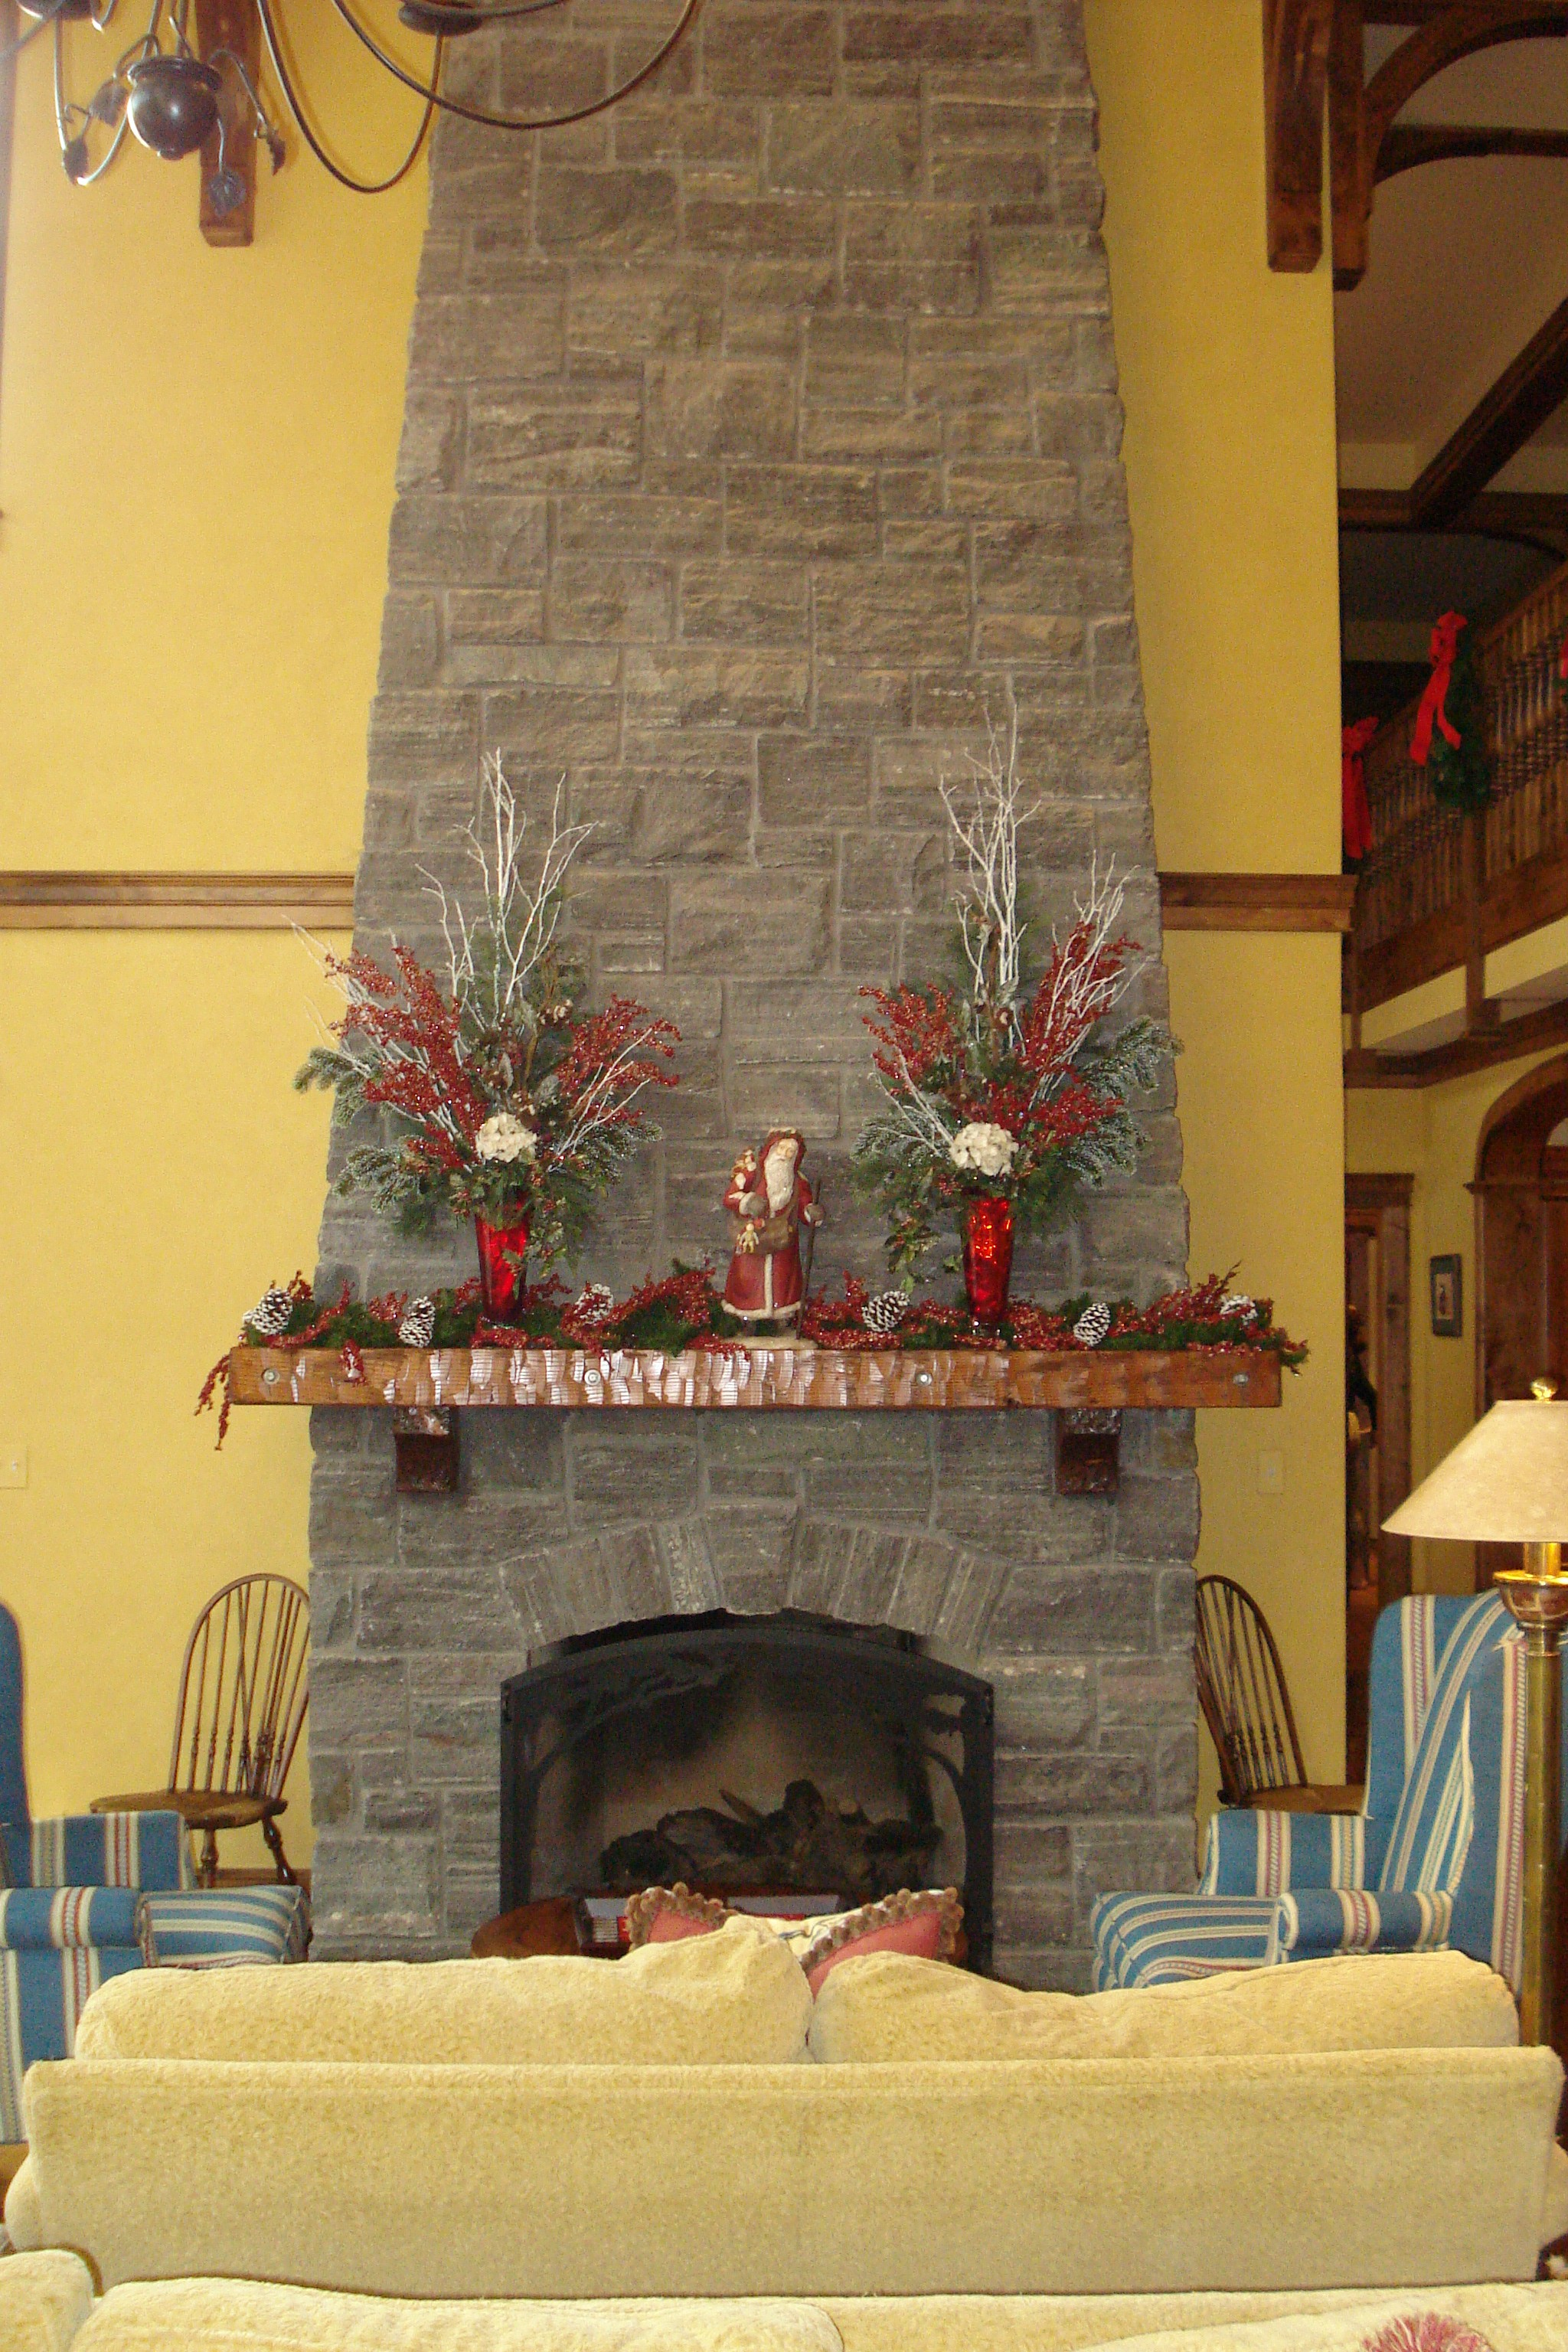 Custom Christmas mantle decor